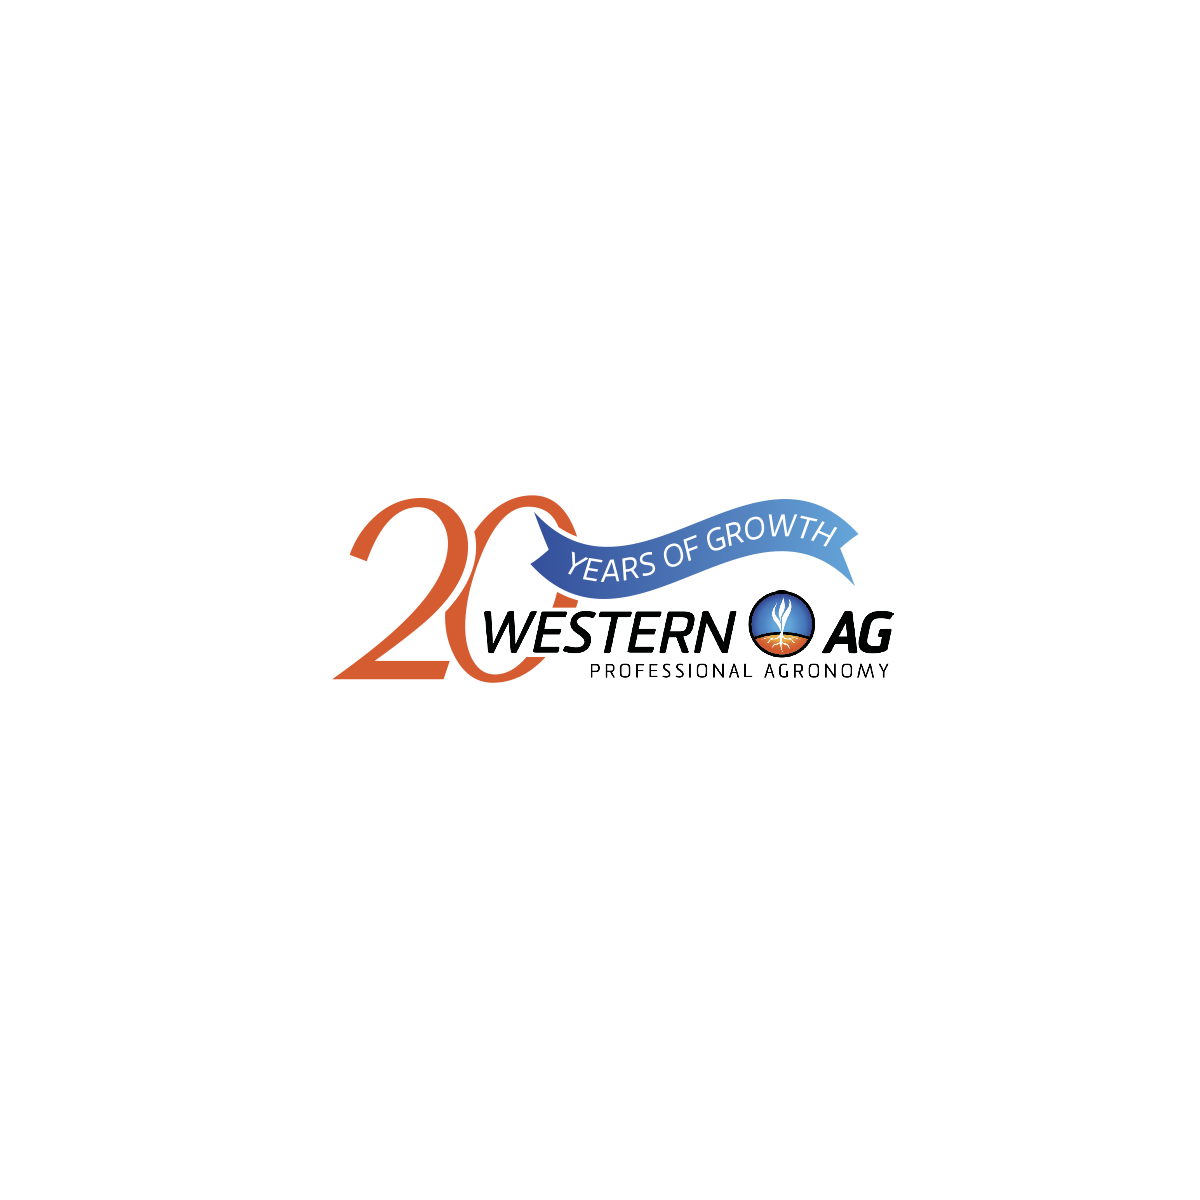 20th Anniversary Design to add to existing LOGO